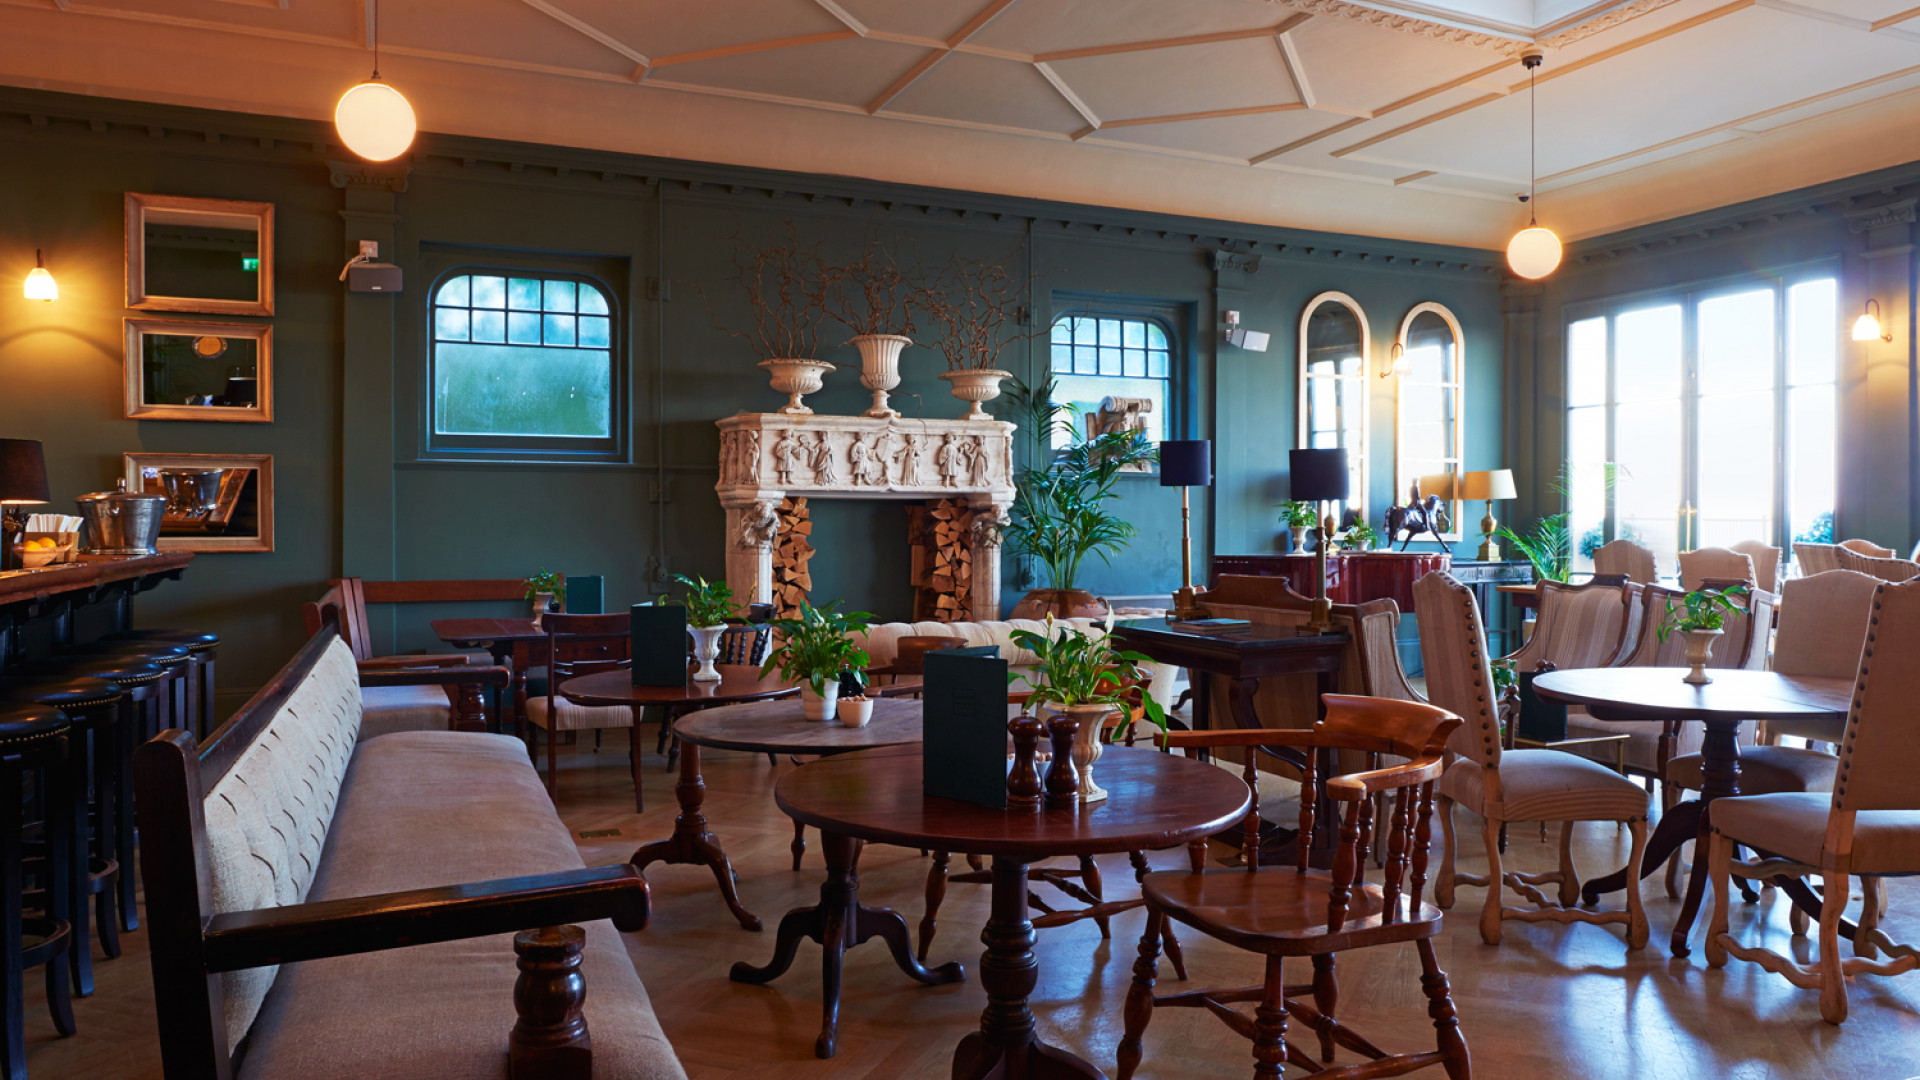 Albion House's dining room